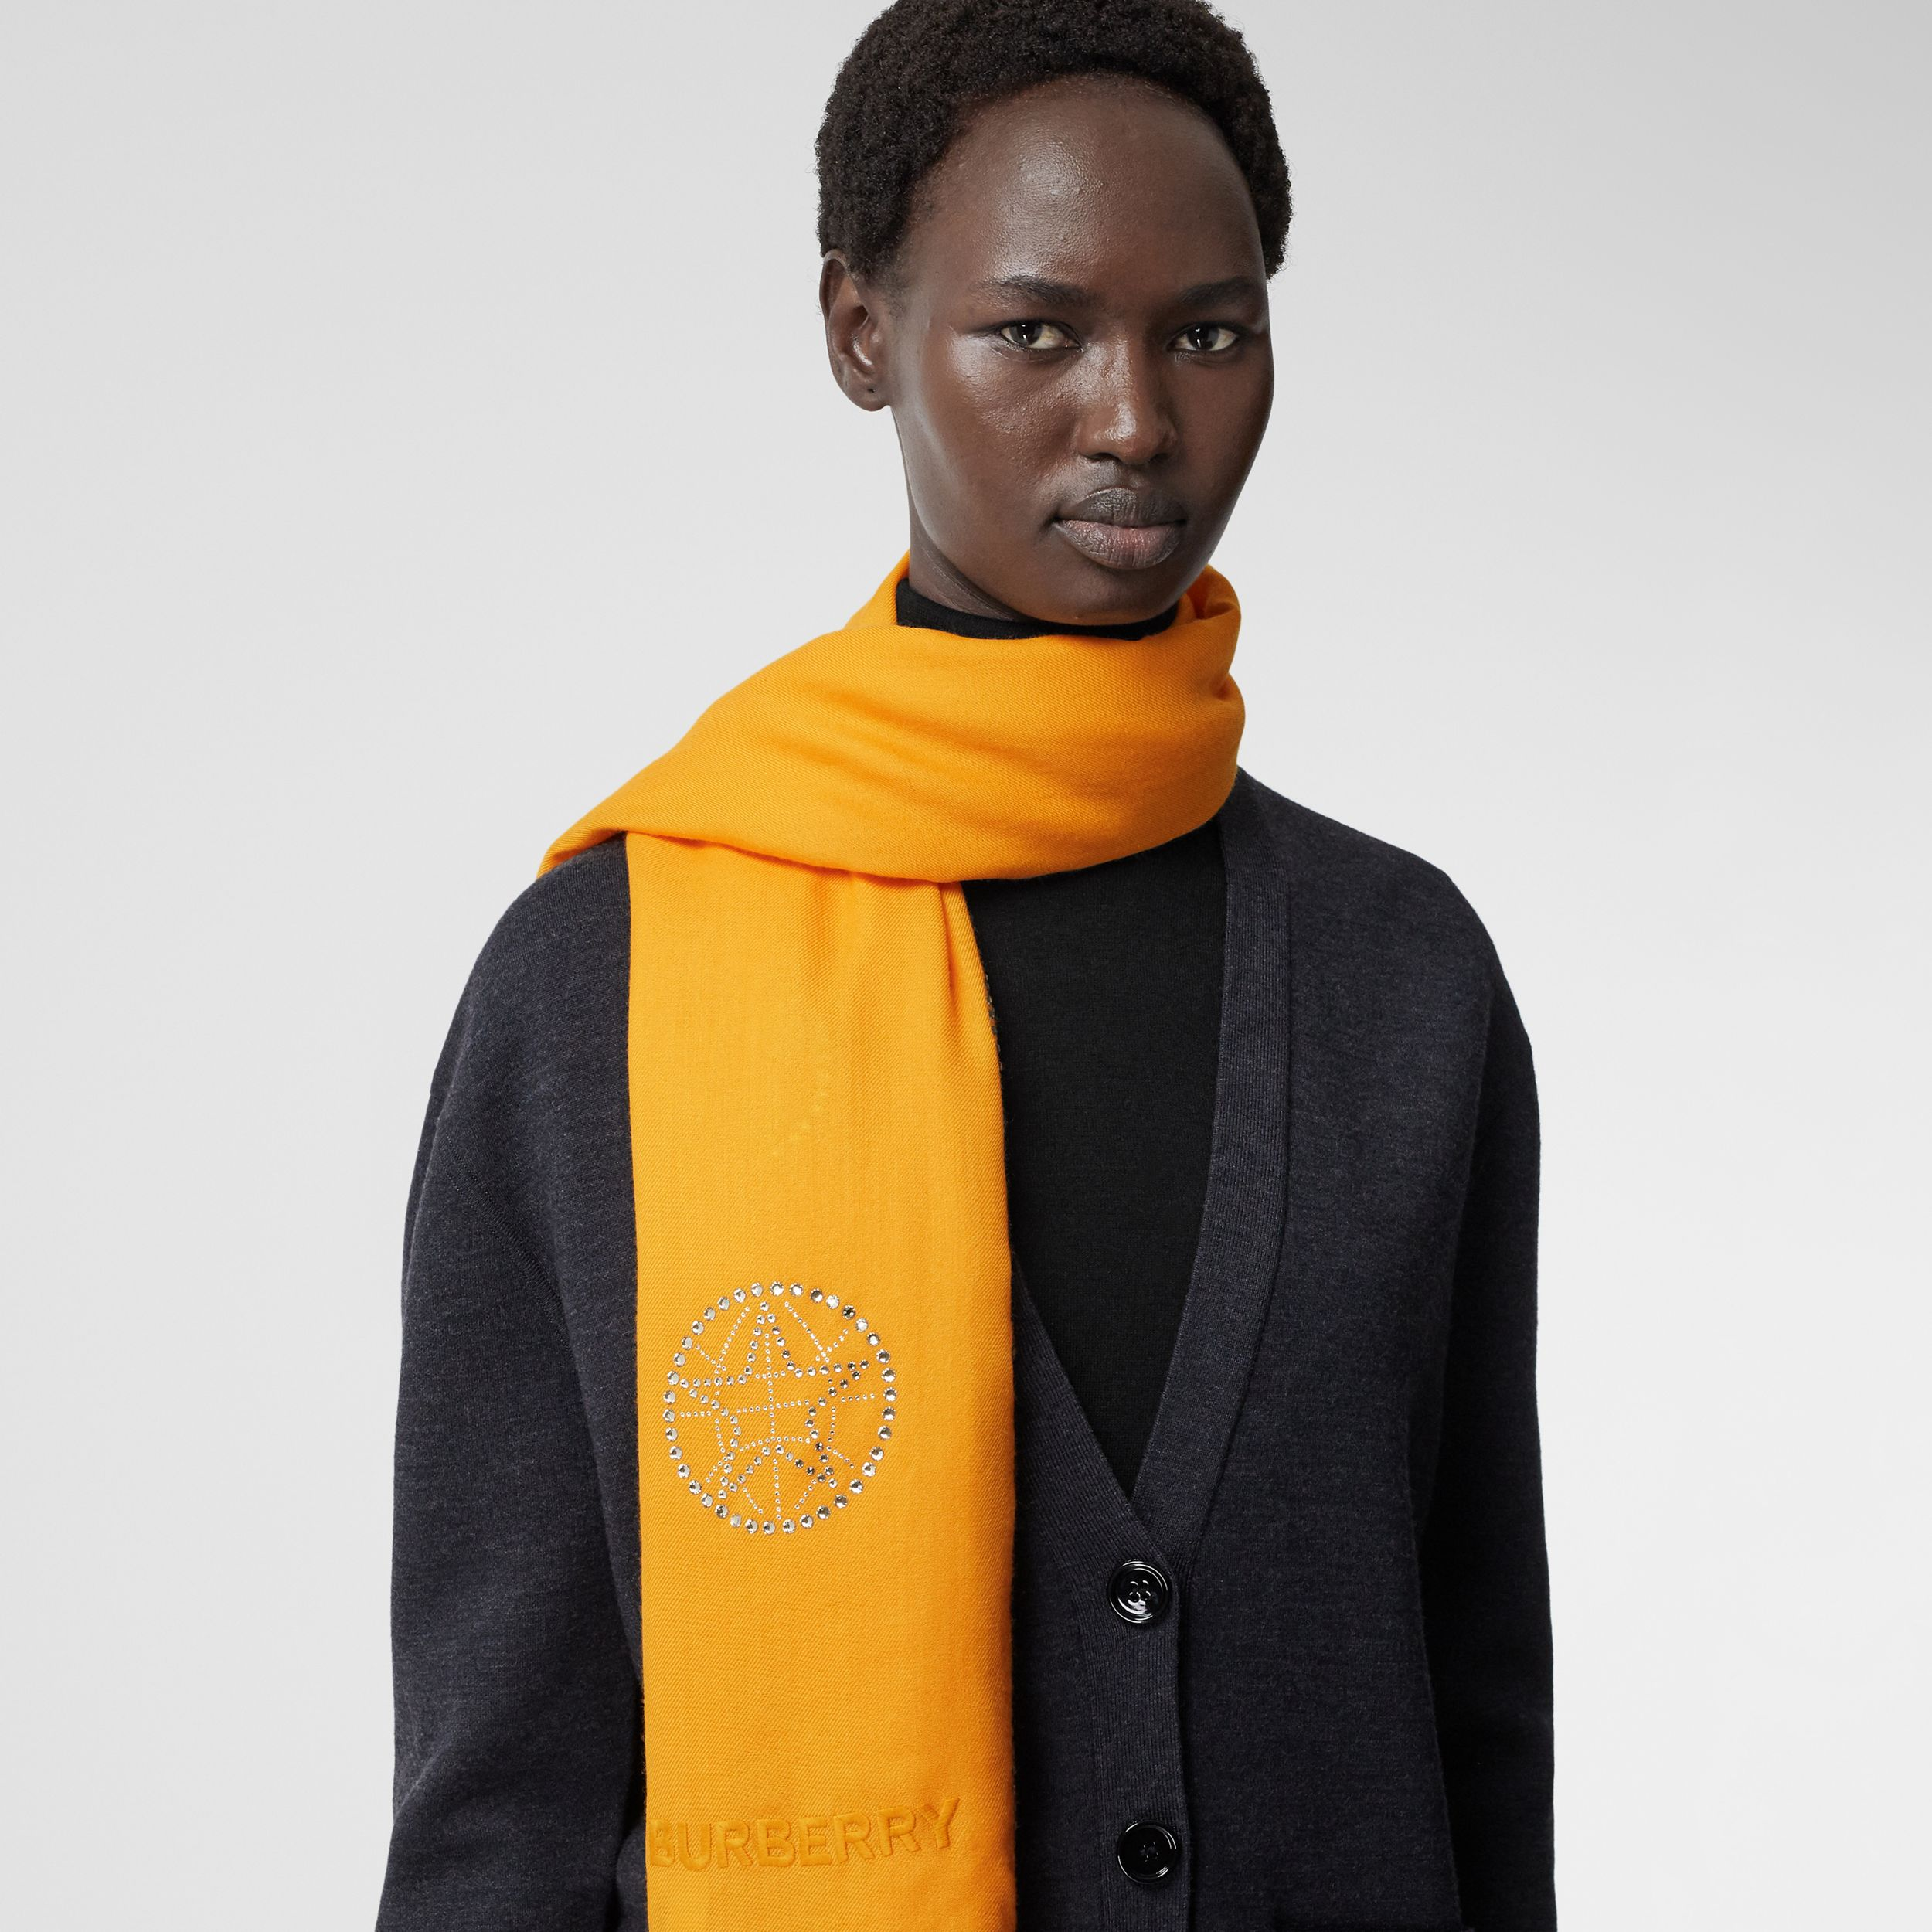 Crystal Globe Graphic Lightweight Cashmere Scarf in Citrus Orange | Burberry - 3